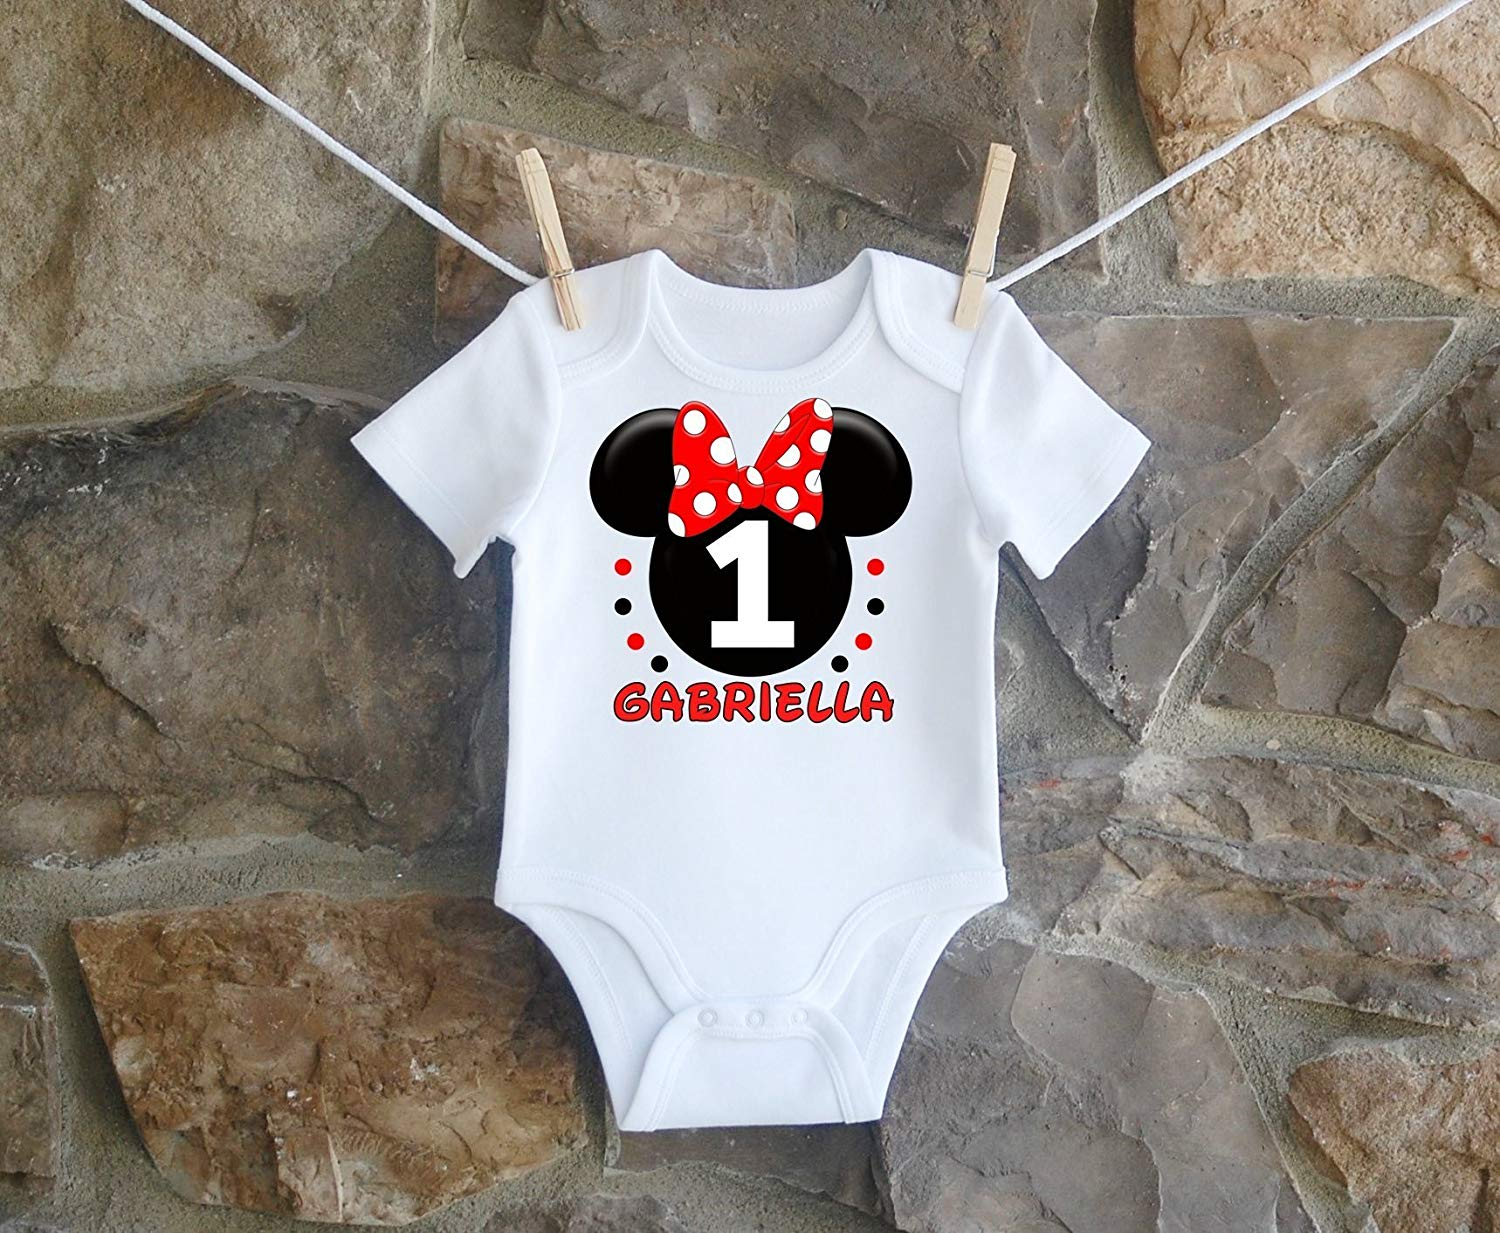 0ddee70fc Get Quotations · Minnie Mouse Birthday Shirt, Minnie Mouse Birthday Shirt  For Girls, Personalized Girls Red Black